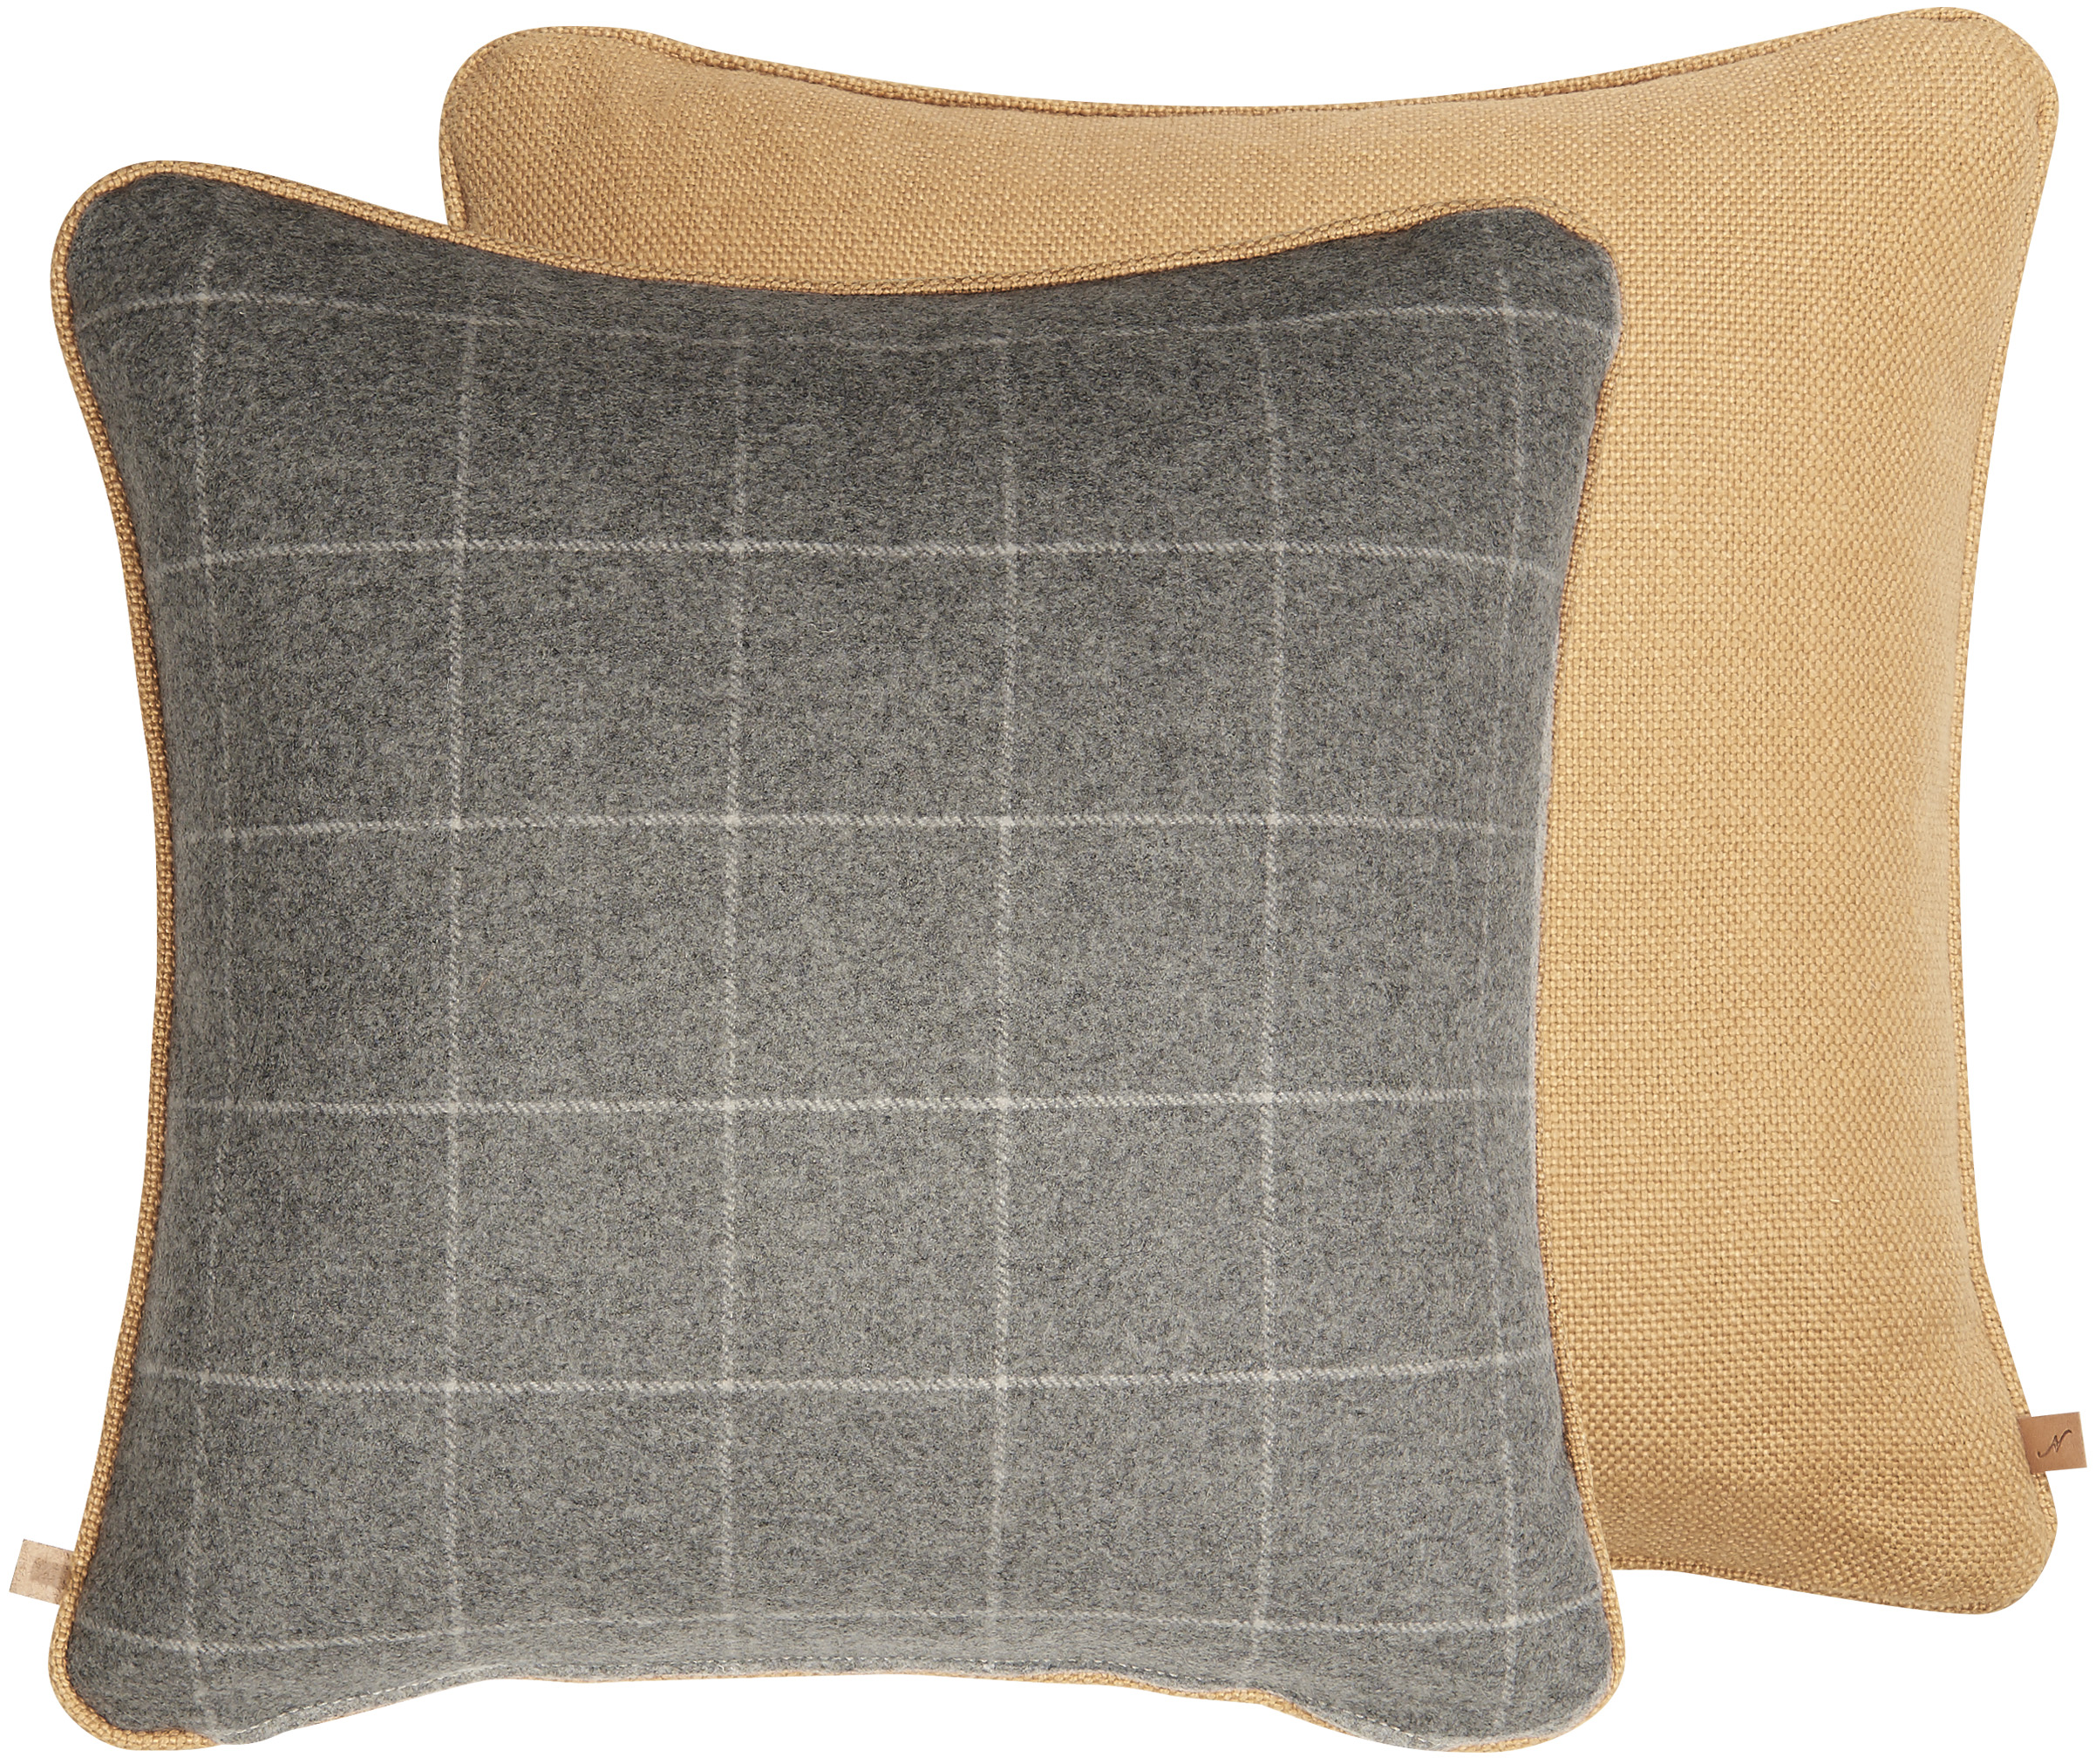 Camilla Cushion 45x45cm, Hugo Mustard & Ewan Dove